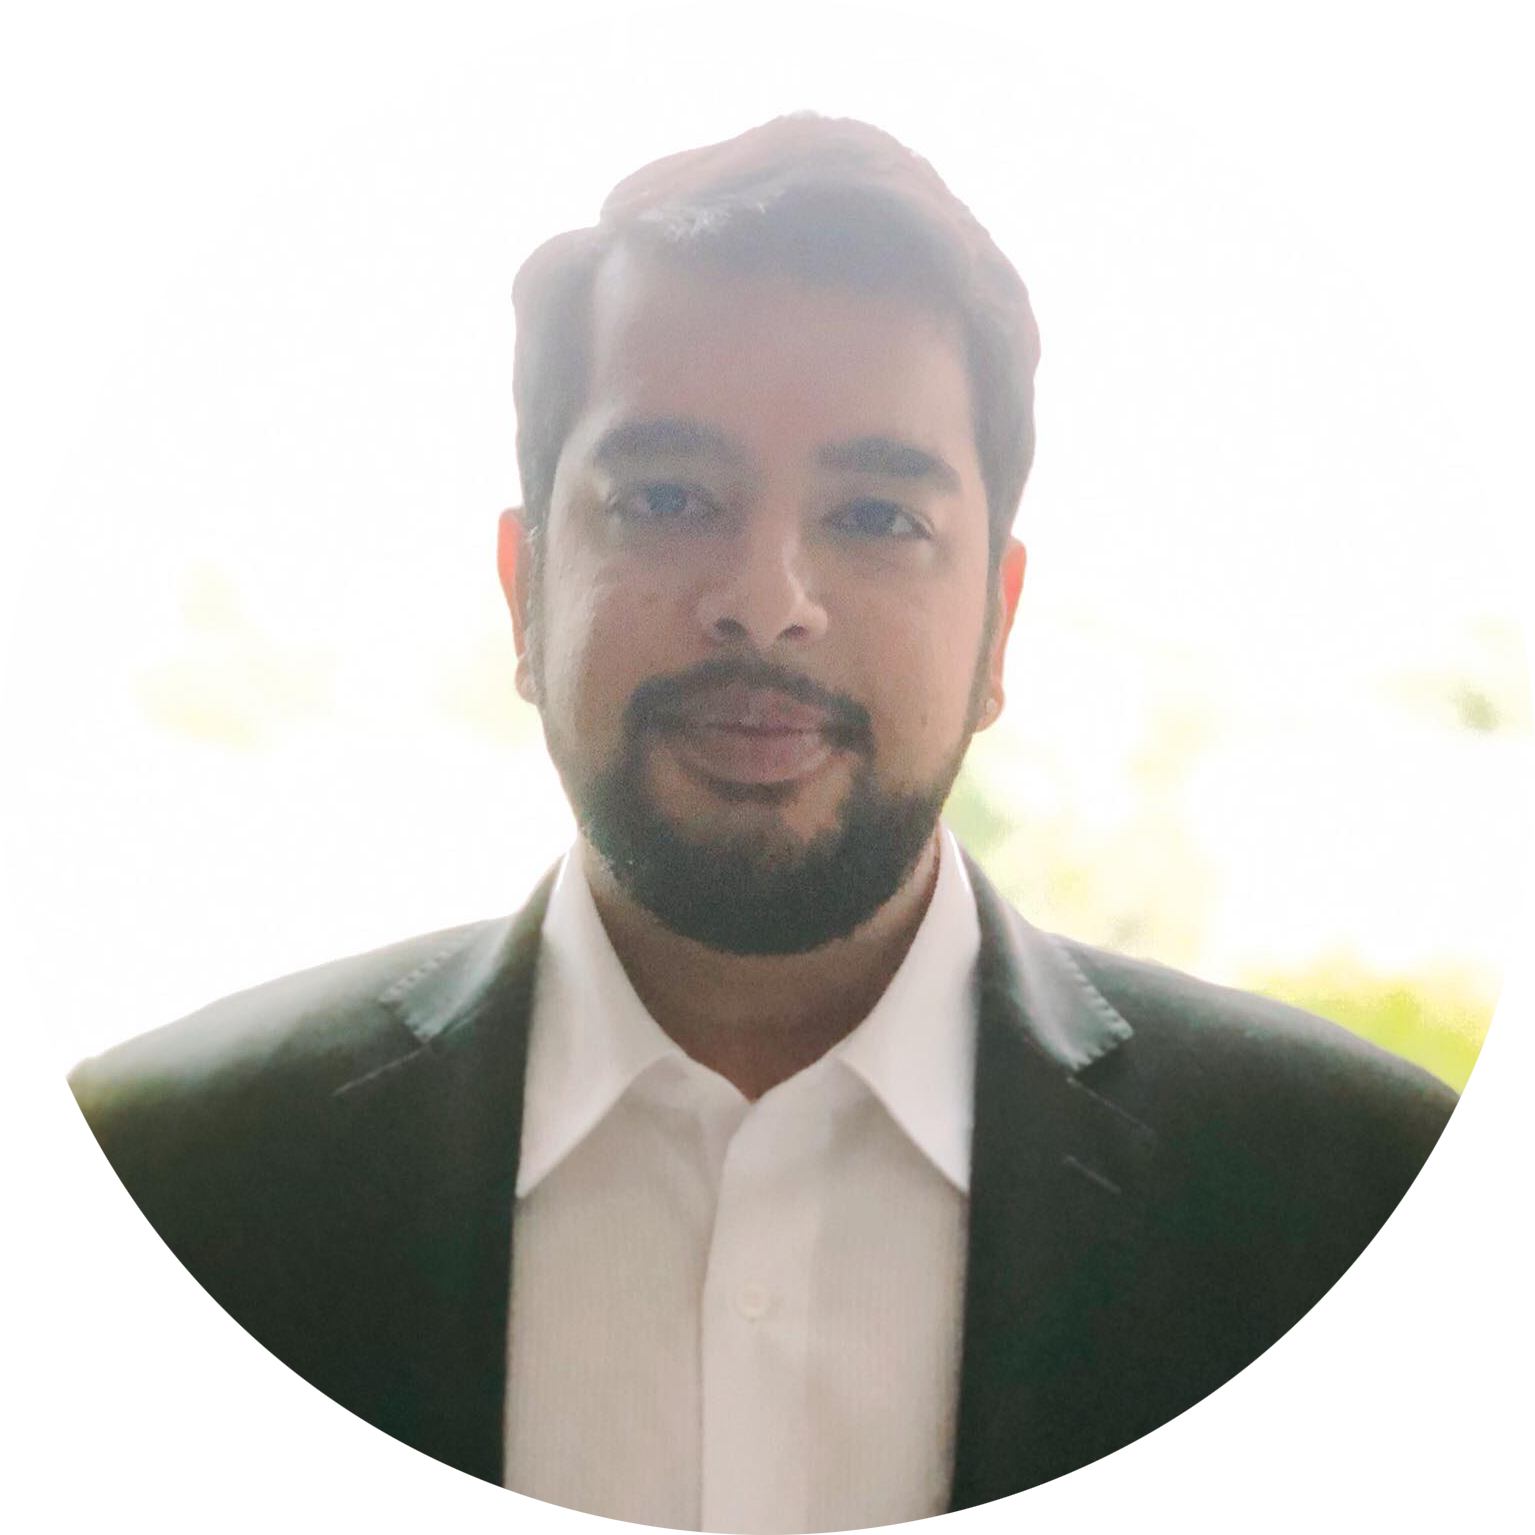 Shaan Mulchandani - PartnerShaan is a cybersecurity, software, and blockchain professional with experience across private/public sectors, industry verticals (Aerospace & Defense, Consulting, Engineering), and entities from startups to Fortune 500. His corporate experience includes leading security and blockchain practices; Industrial IoT Security & Threat Intelligence R&D; and cyber forensics & advanced threat monitoring solution development. Shaan co-founded a successful financial data analytics startup; serves in an advisory capacity; holds several patents; and thought leadership works in academic publications, conference presentations, panel discussions, and published articles.